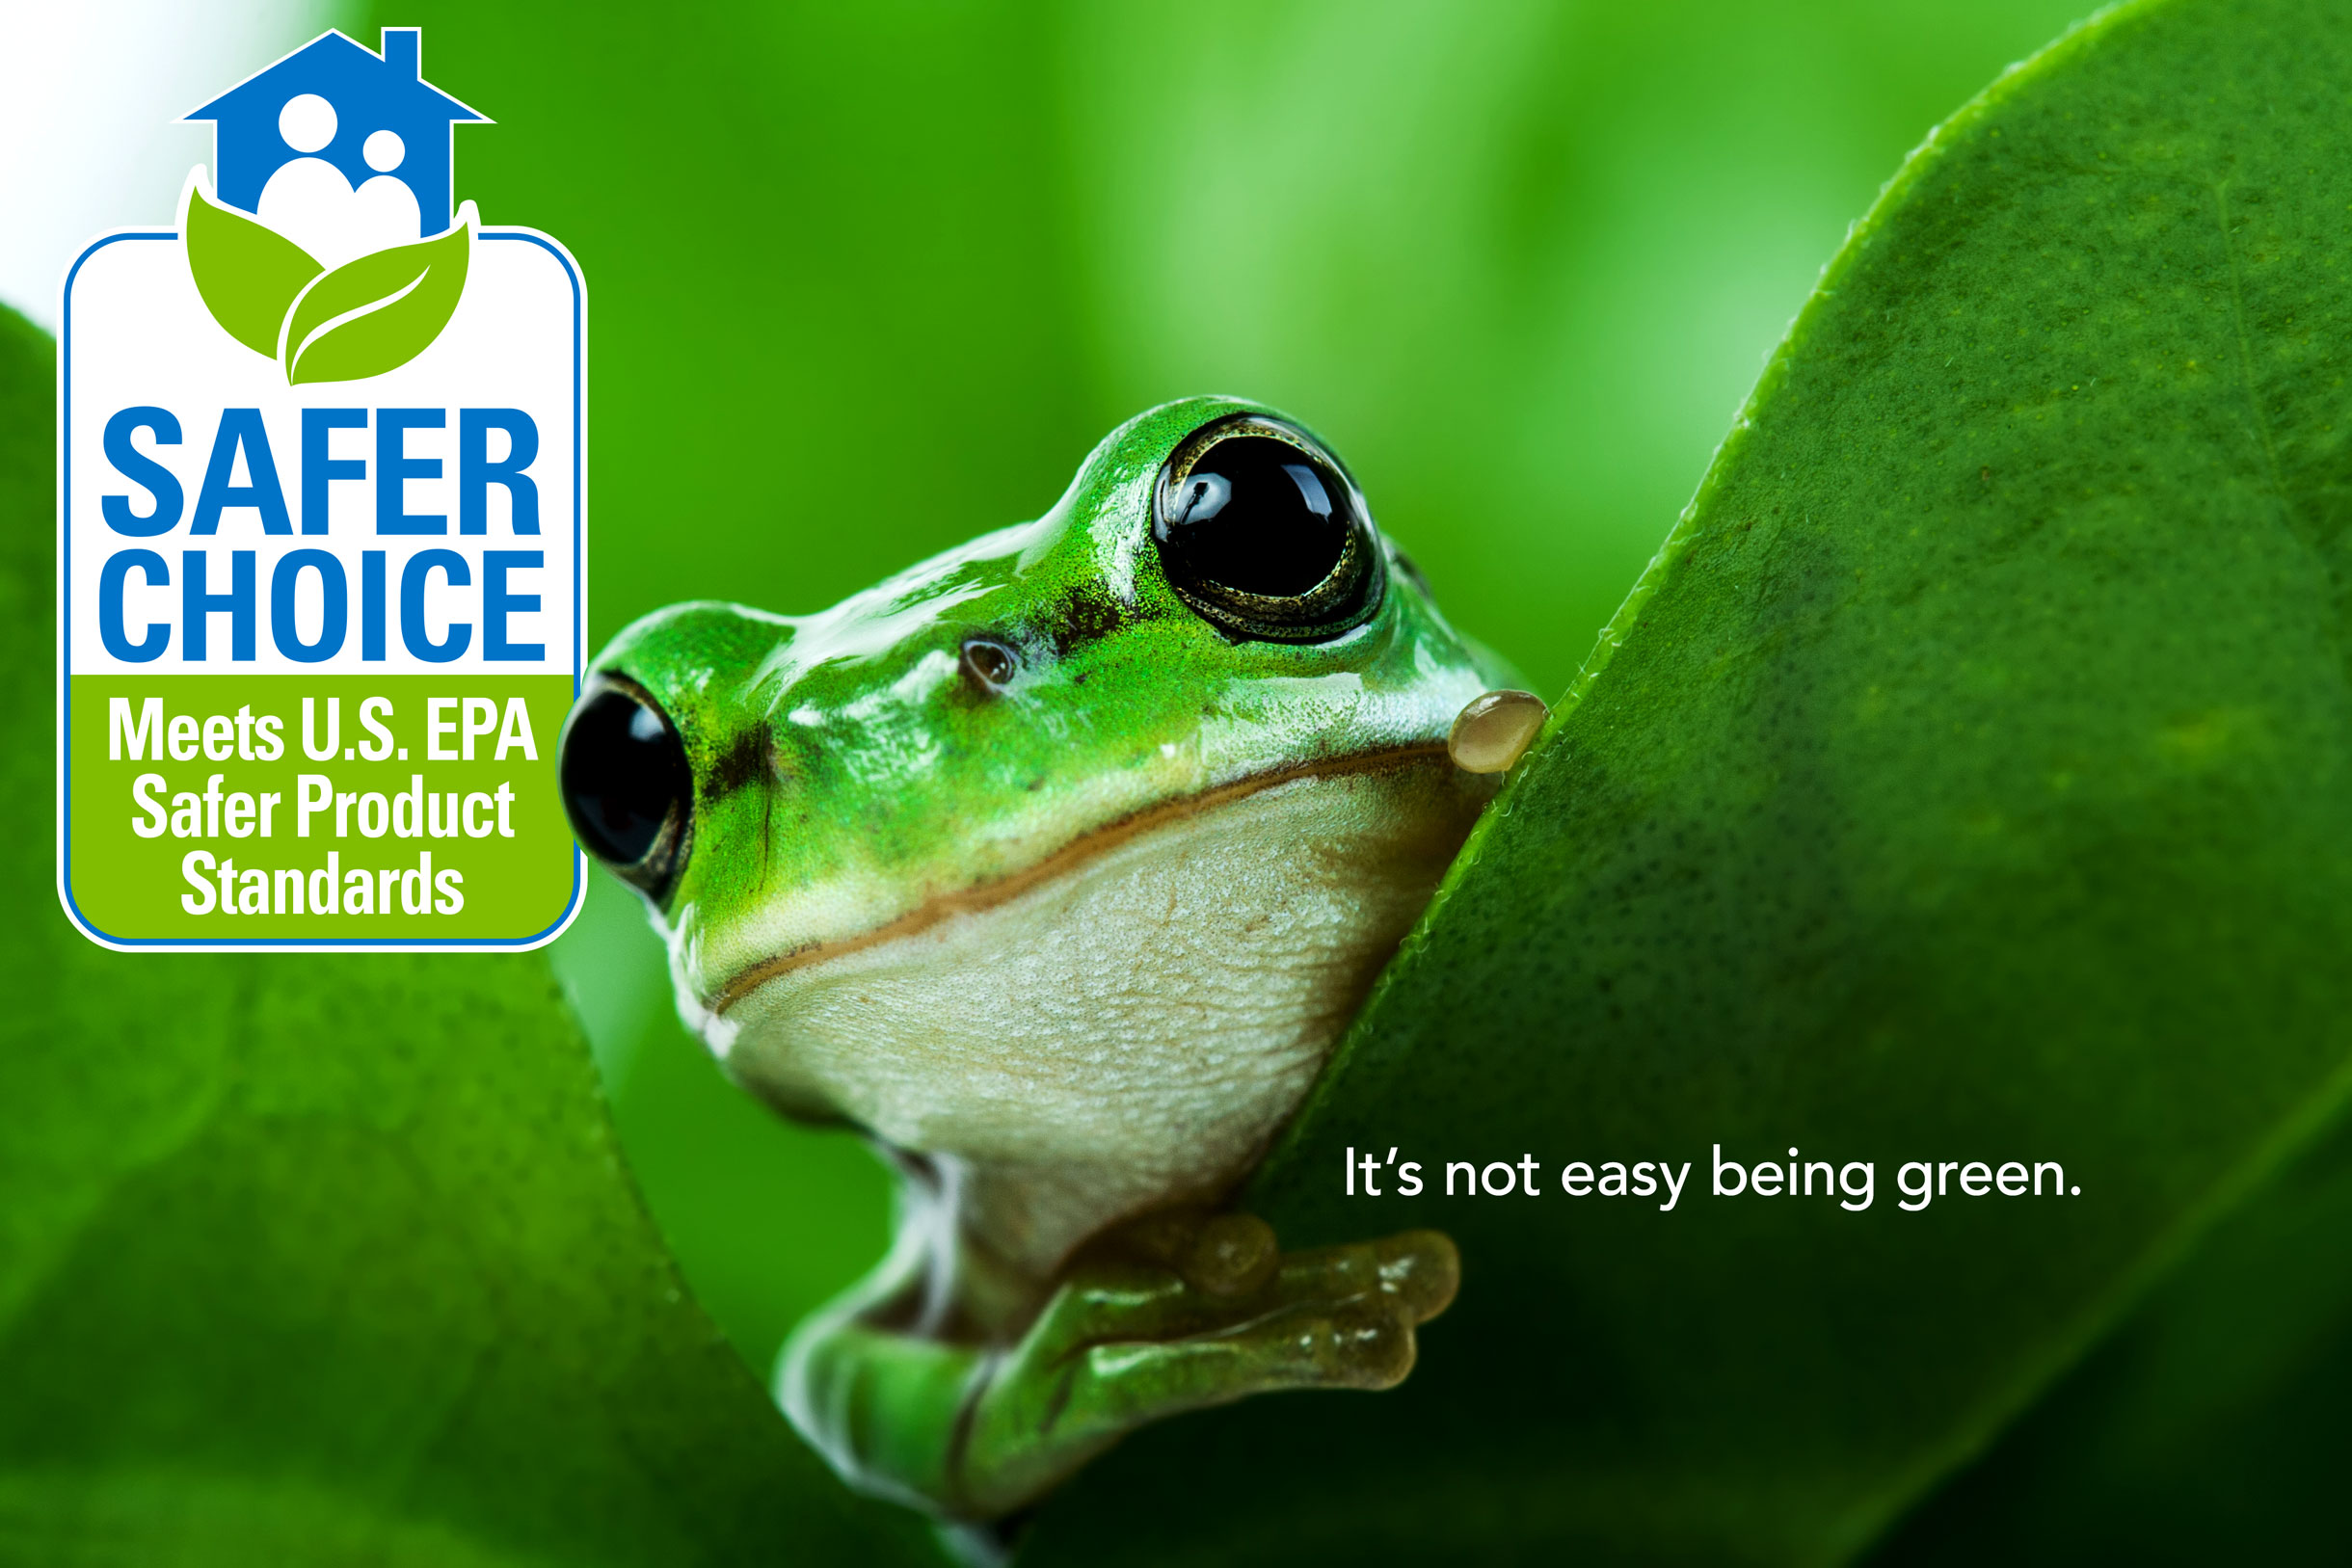 Kermit the Frog Was Right: It's Not Easy Being Green, but It's the Right Choice for Your Business